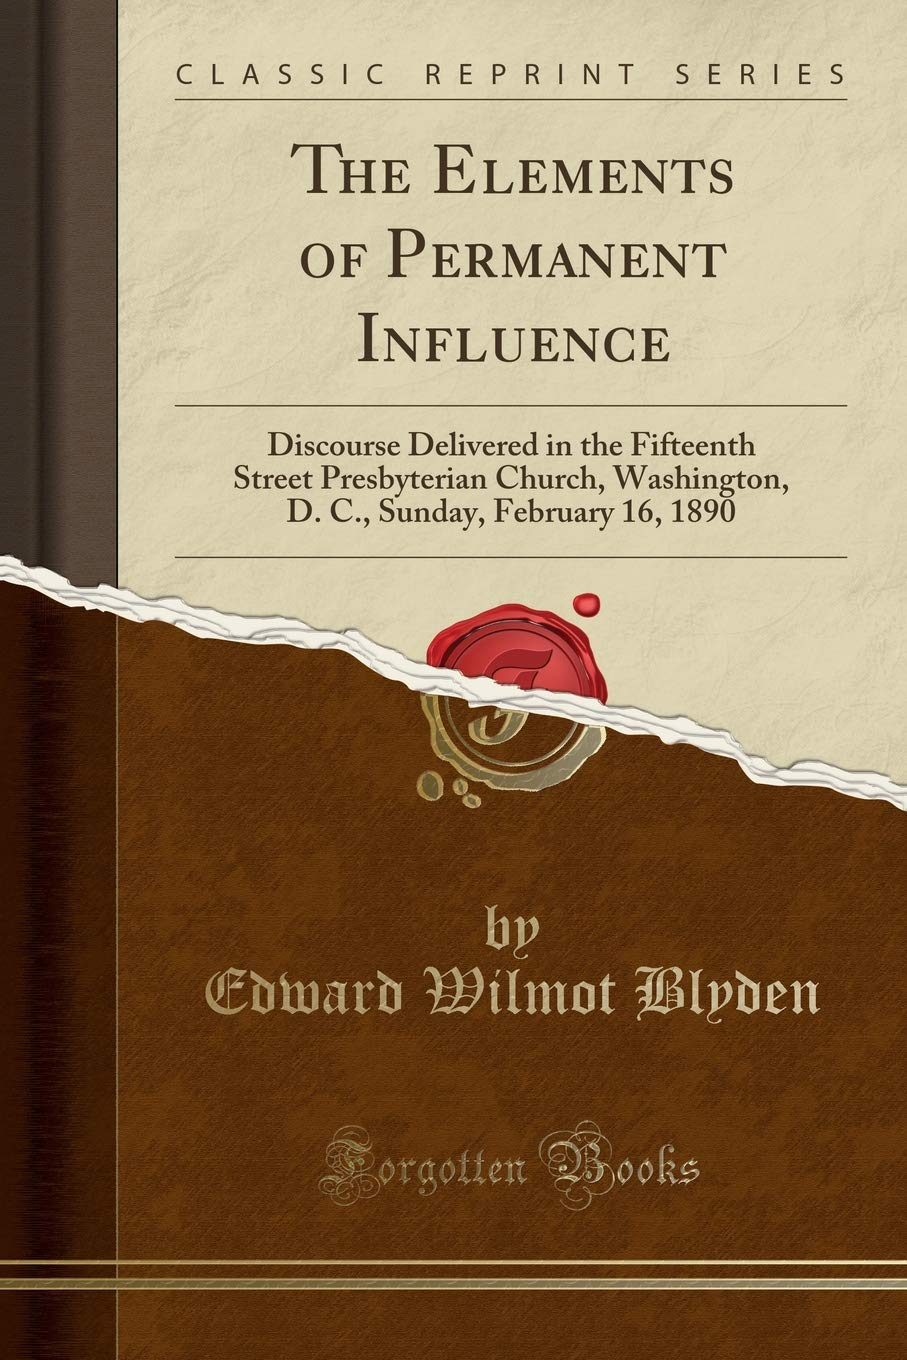 The Elements of Permanent Influence: Discourse Delivered in the Fifteenth Street Presbyterian Church, Washington, D. C., Sunday, February 16, 1890 (Classic Reprint) ebook